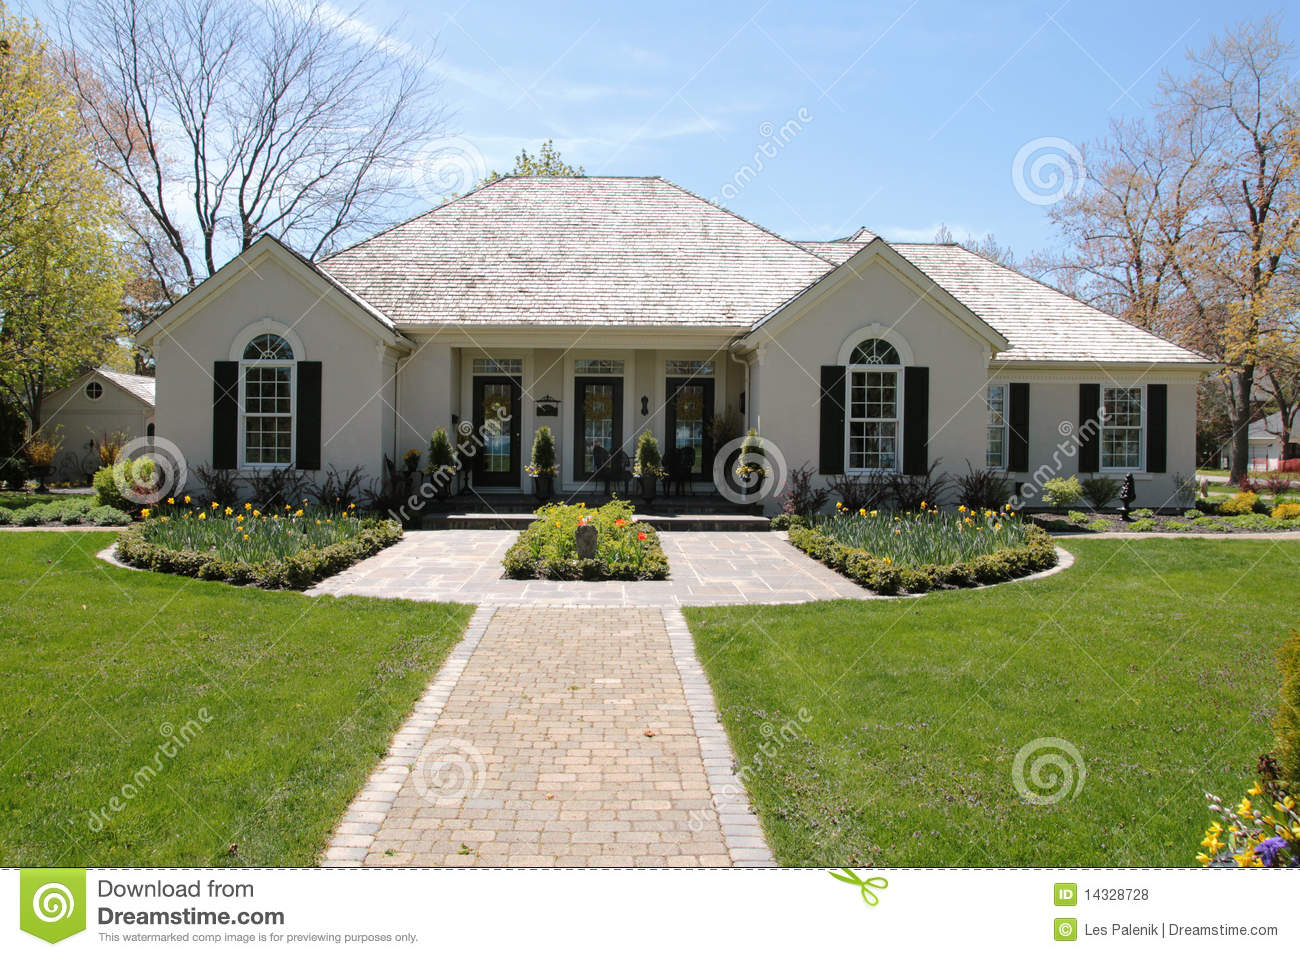 Nice house with symmetrical landscaping stock photo for Nice home photos